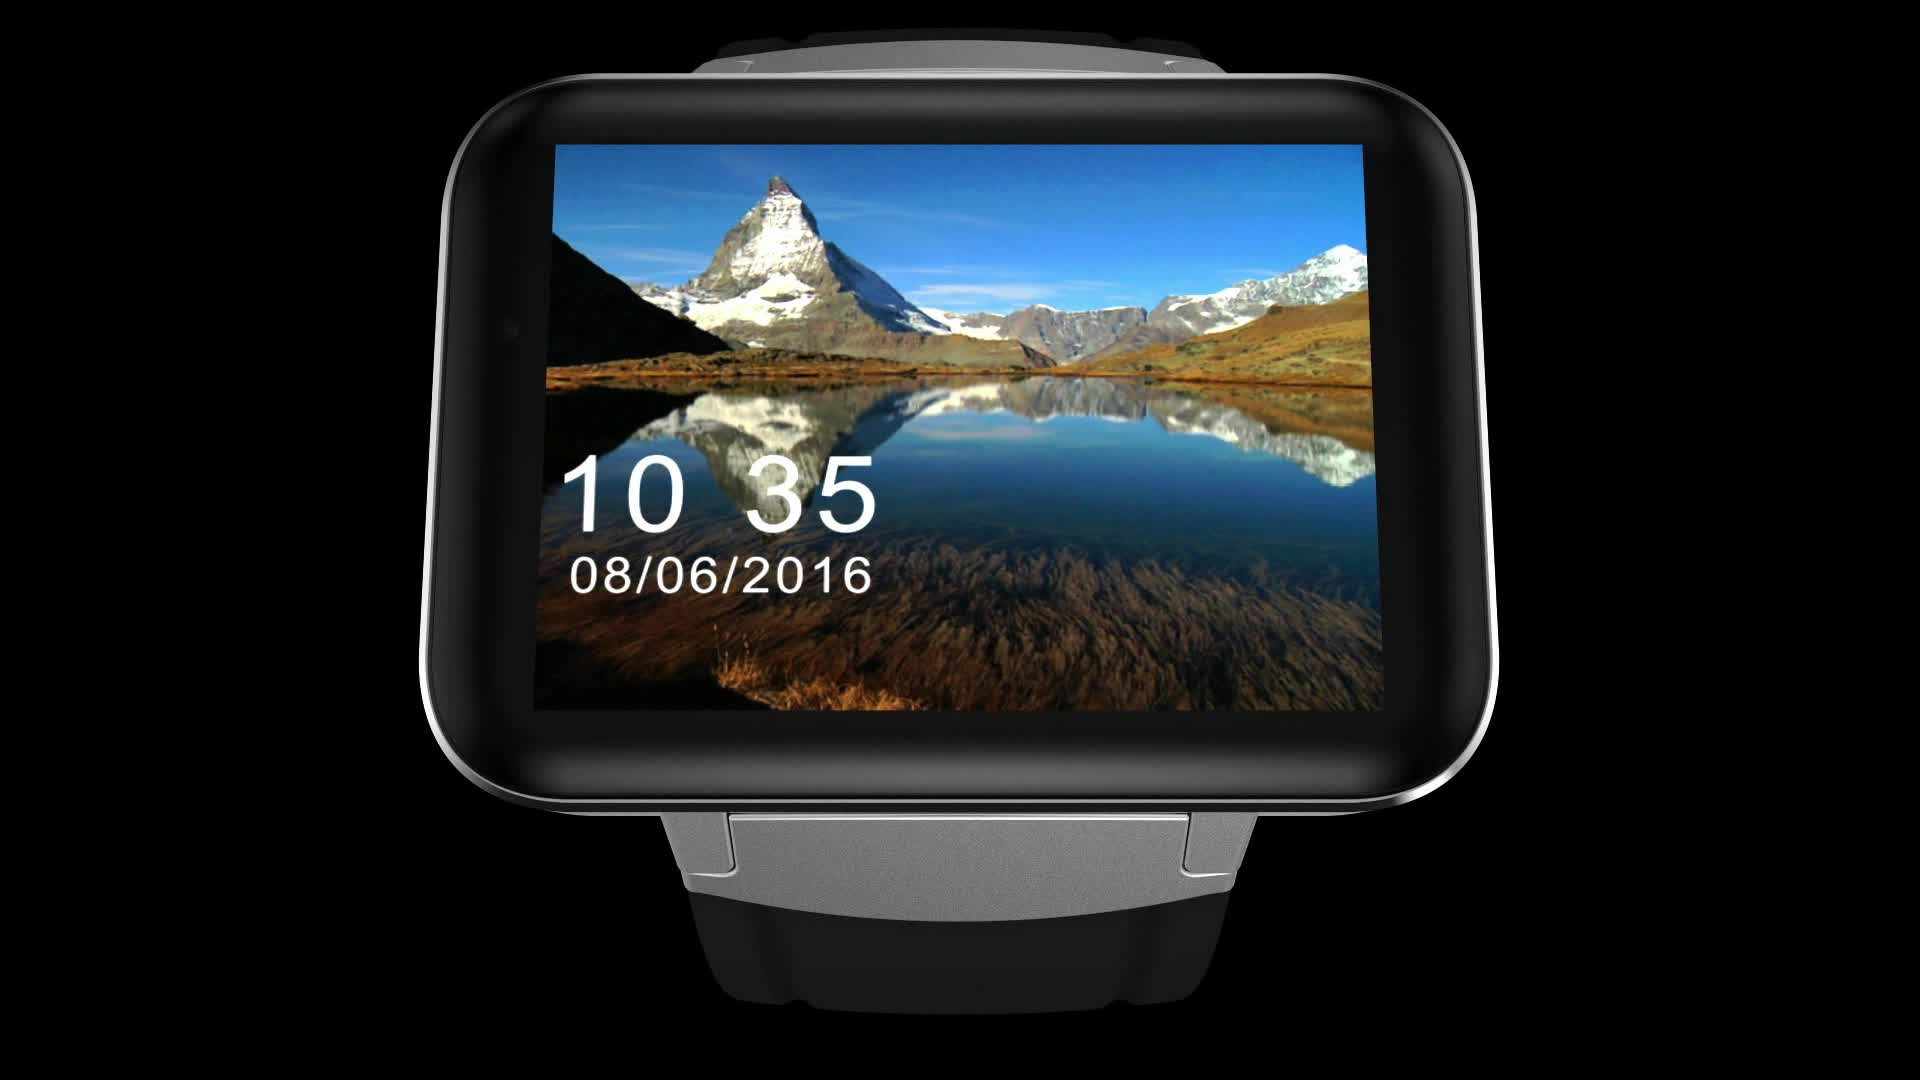 ODM Customize 3G GPS WIFI NFC RFID Programmable Android Smart Watch Mobile Phone